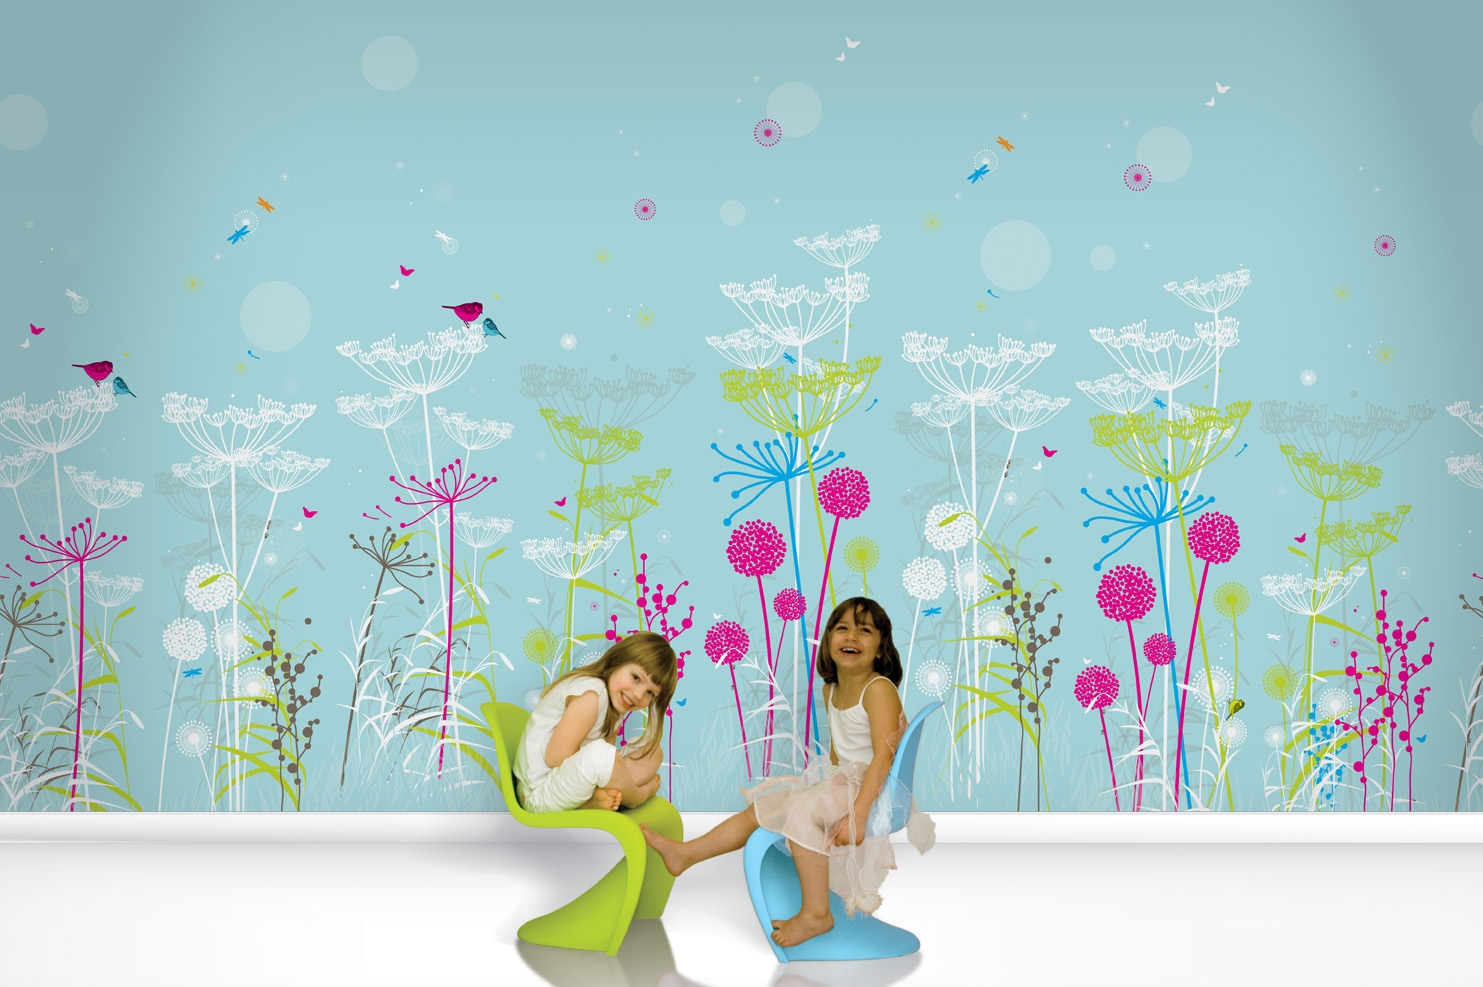 24 kids wallpapers images pictures design trends Wallpaper for childrens room